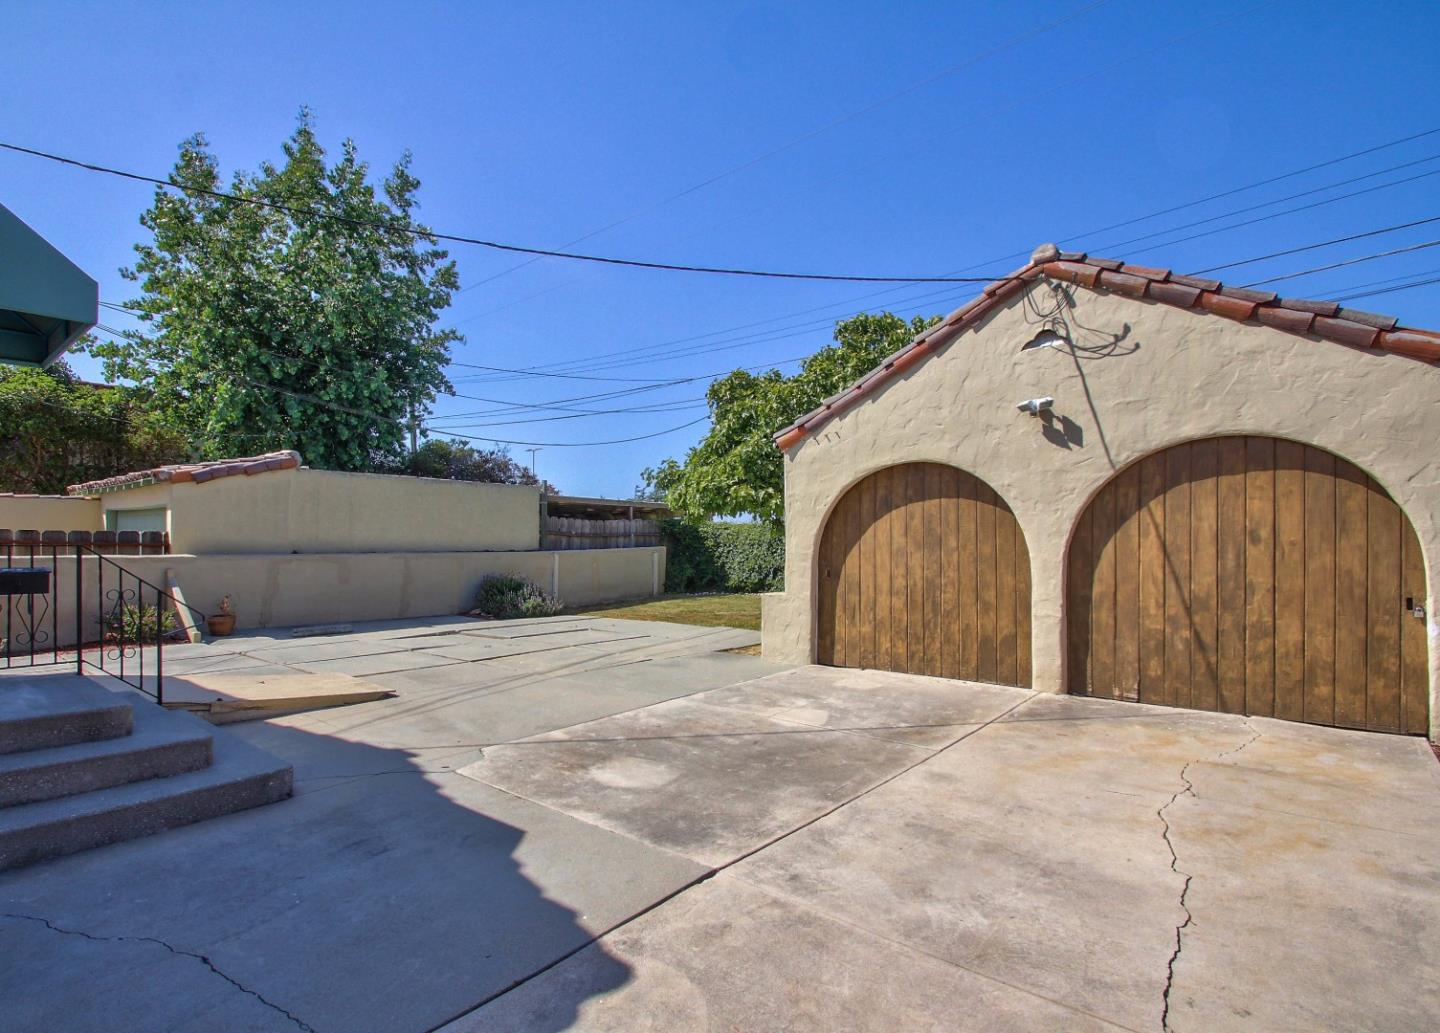 Additional photo for property listing at 14 Orange Drive  Salinas, California 93901 United States